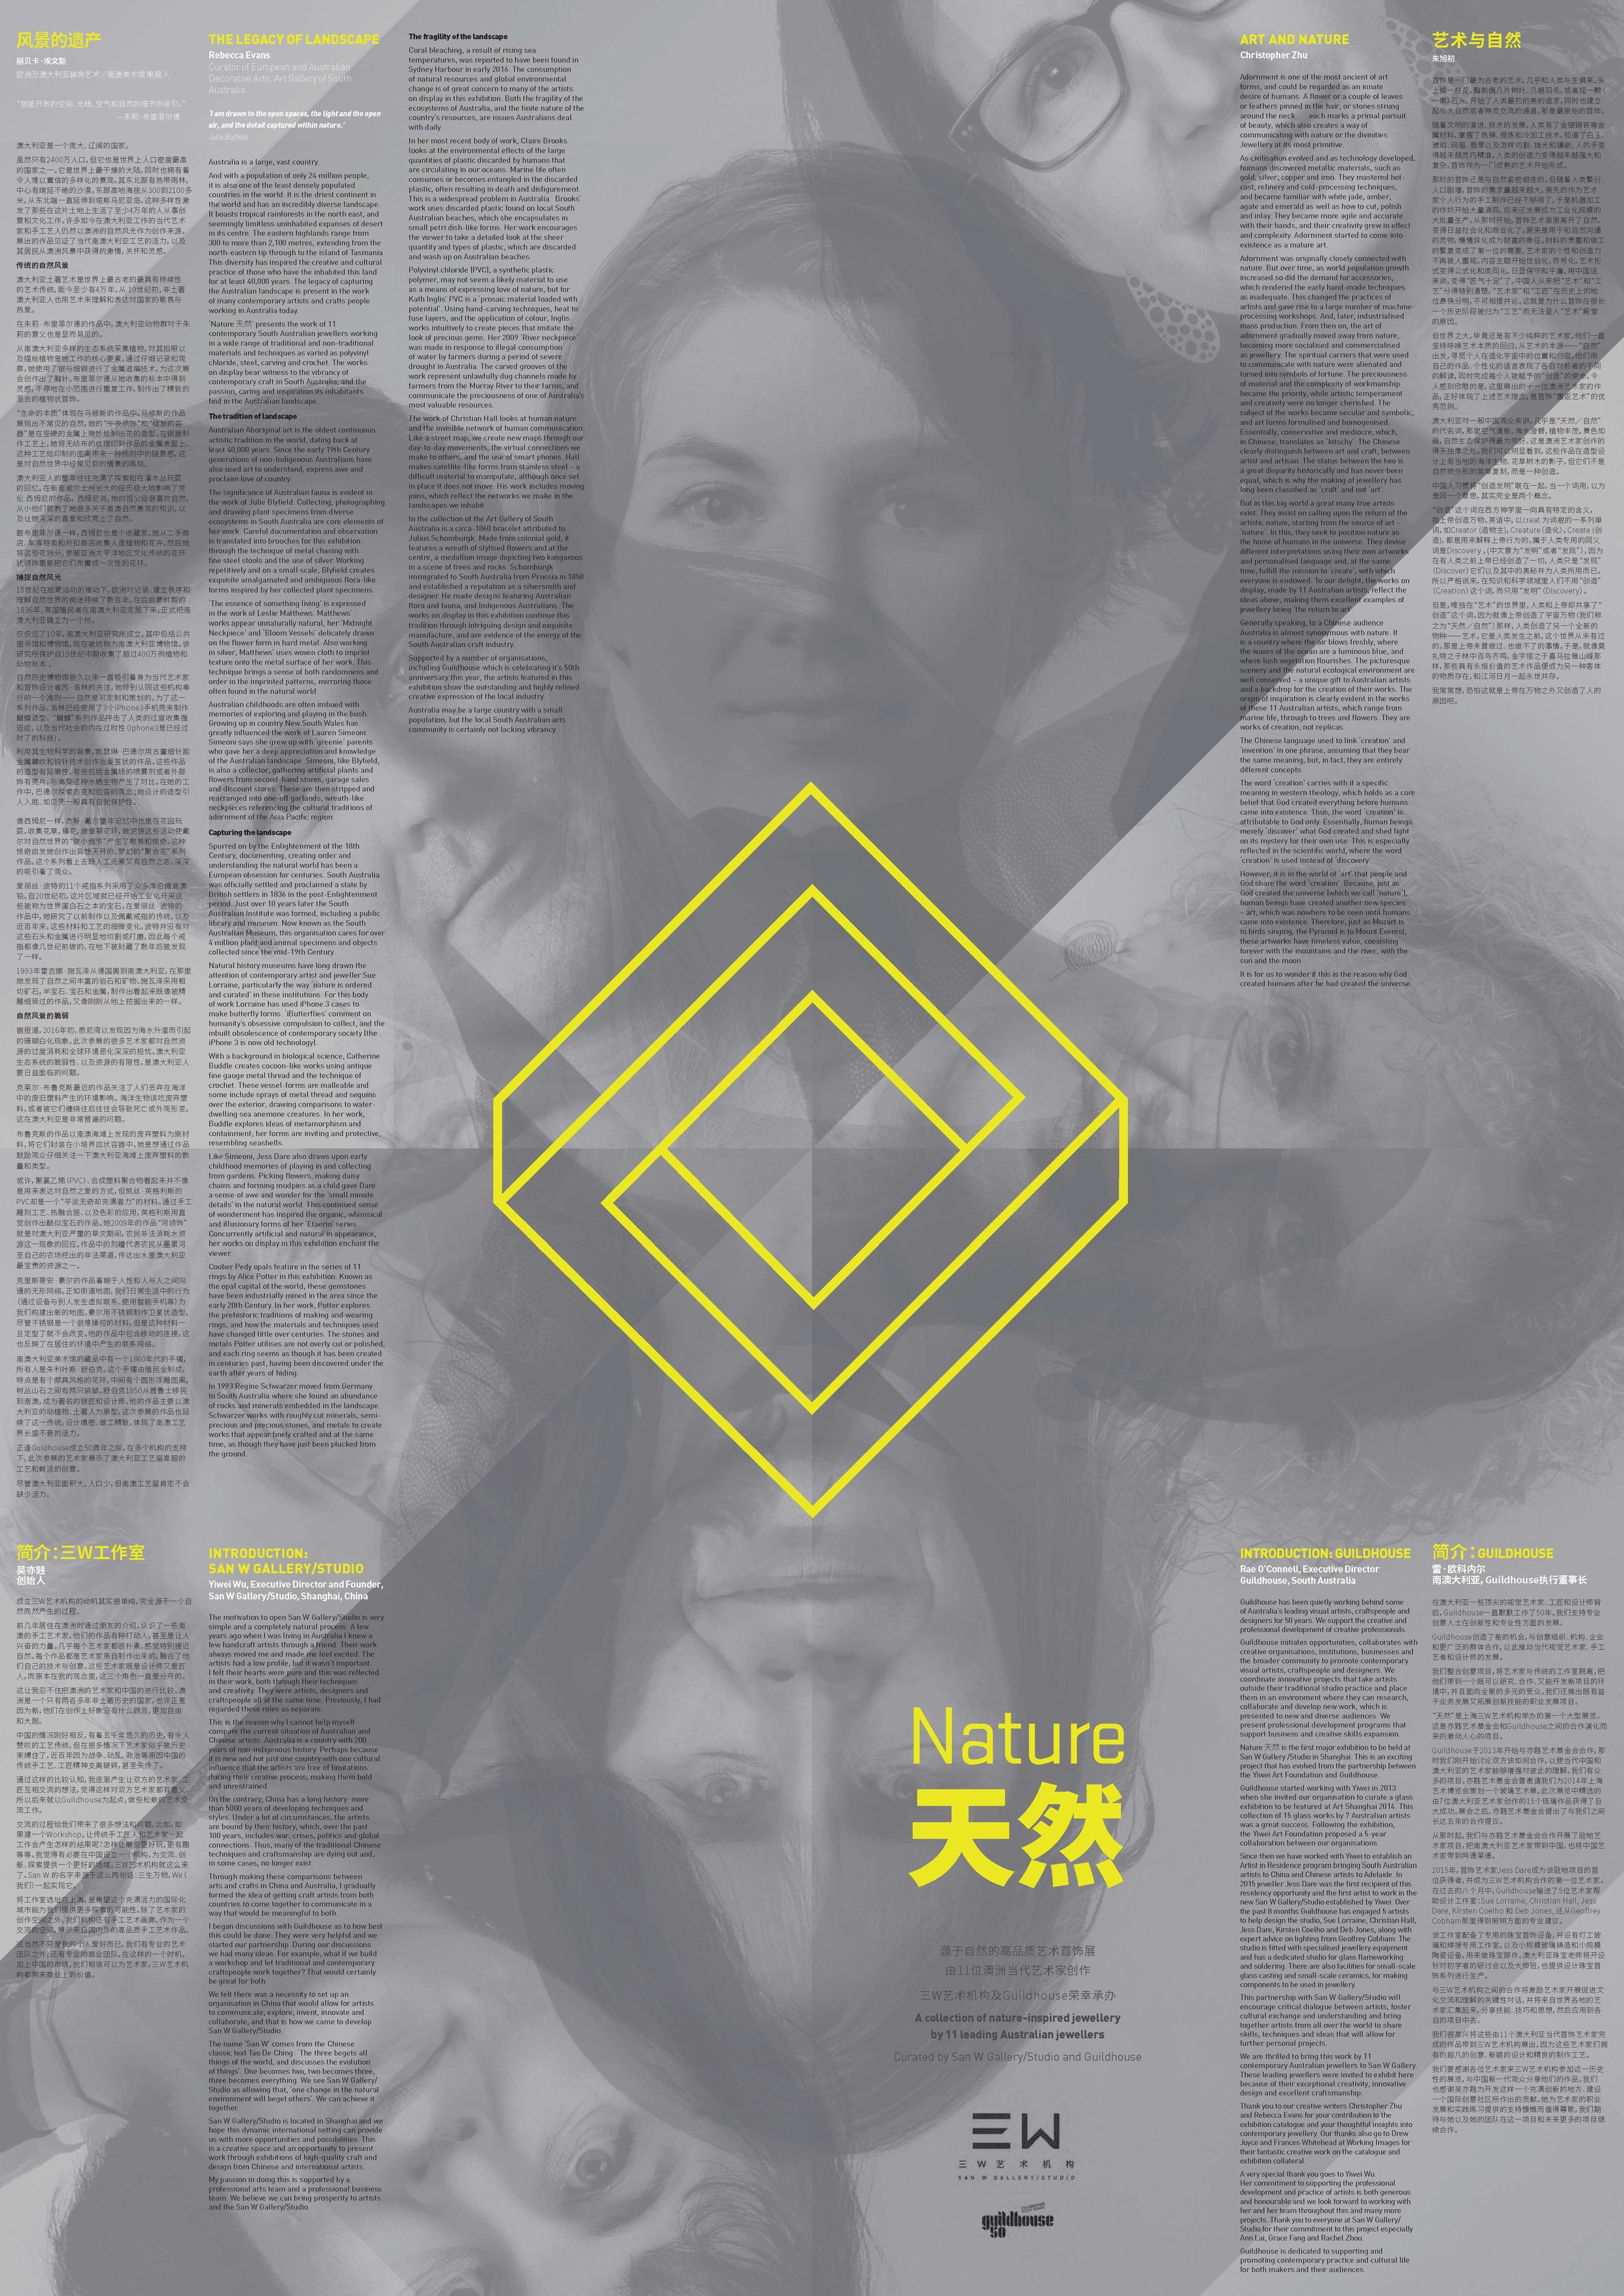 Exhibition poster/catalogue view   here   as a PDF